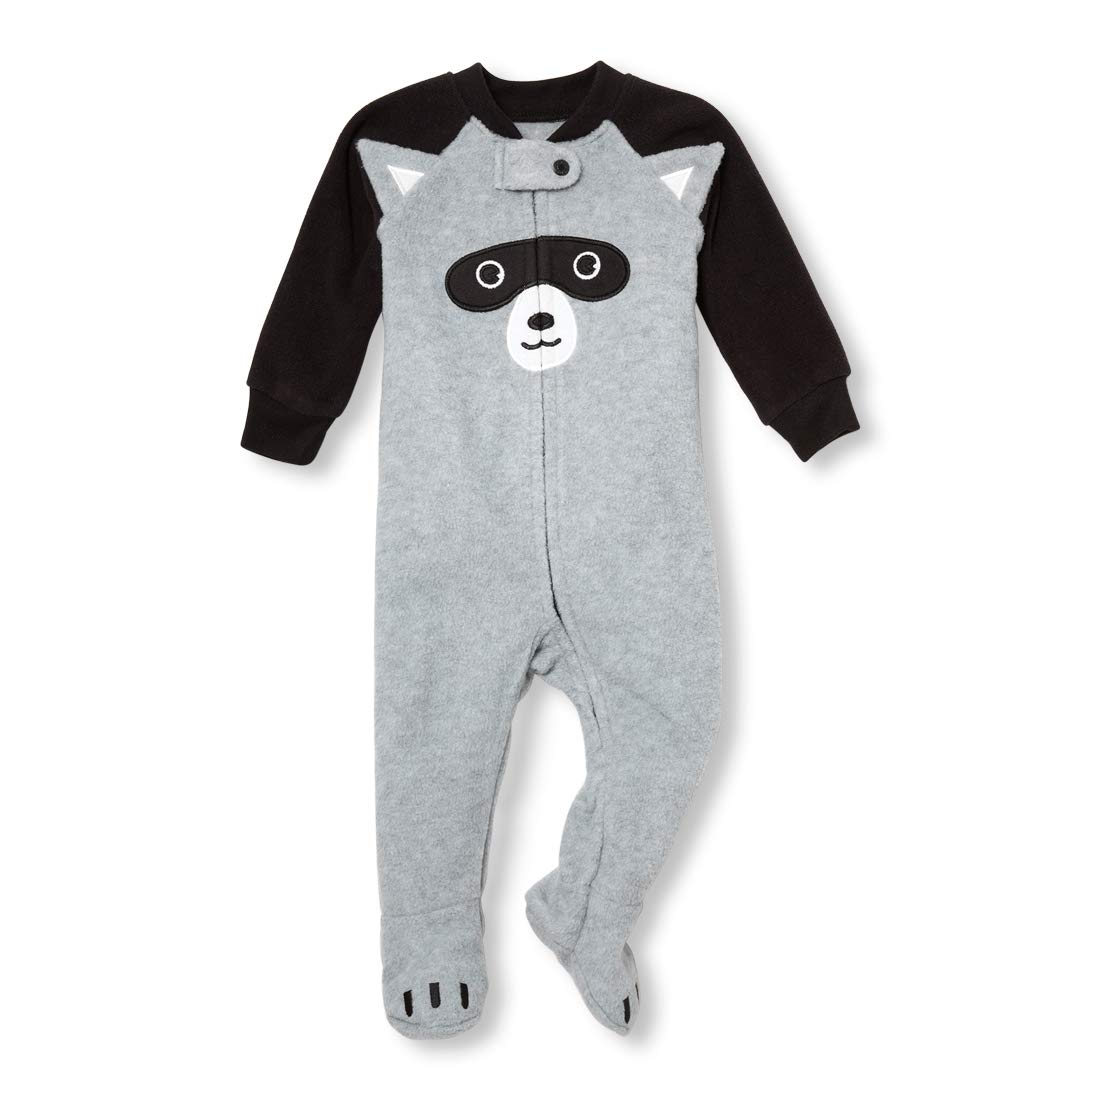 素晴らしい品質 The Heather/T Children's 3 Place Mist SLEEPWEAR ベビーボーイズ 0 - 3 Months Heather/T Mist B079S8DVJ1, キッズワンダーランドプラス:1d56c956 --- a0267596.xsph.ru